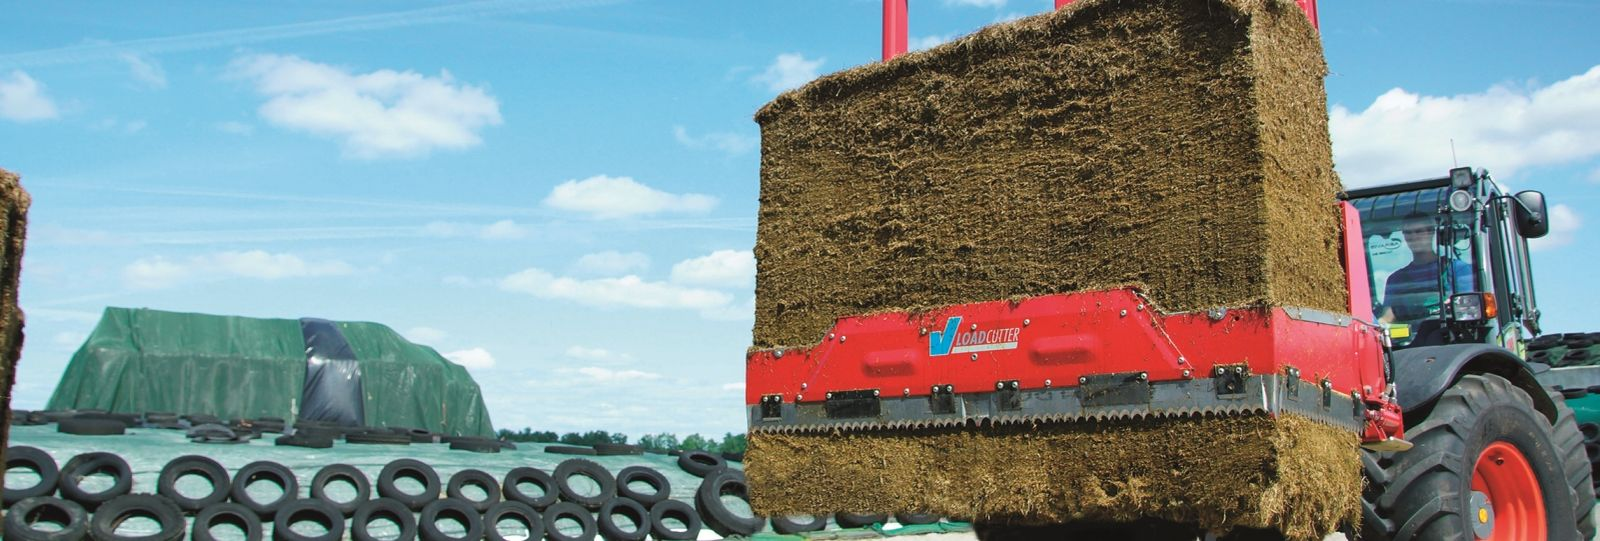 V-LOAD Cutter silage block cutter